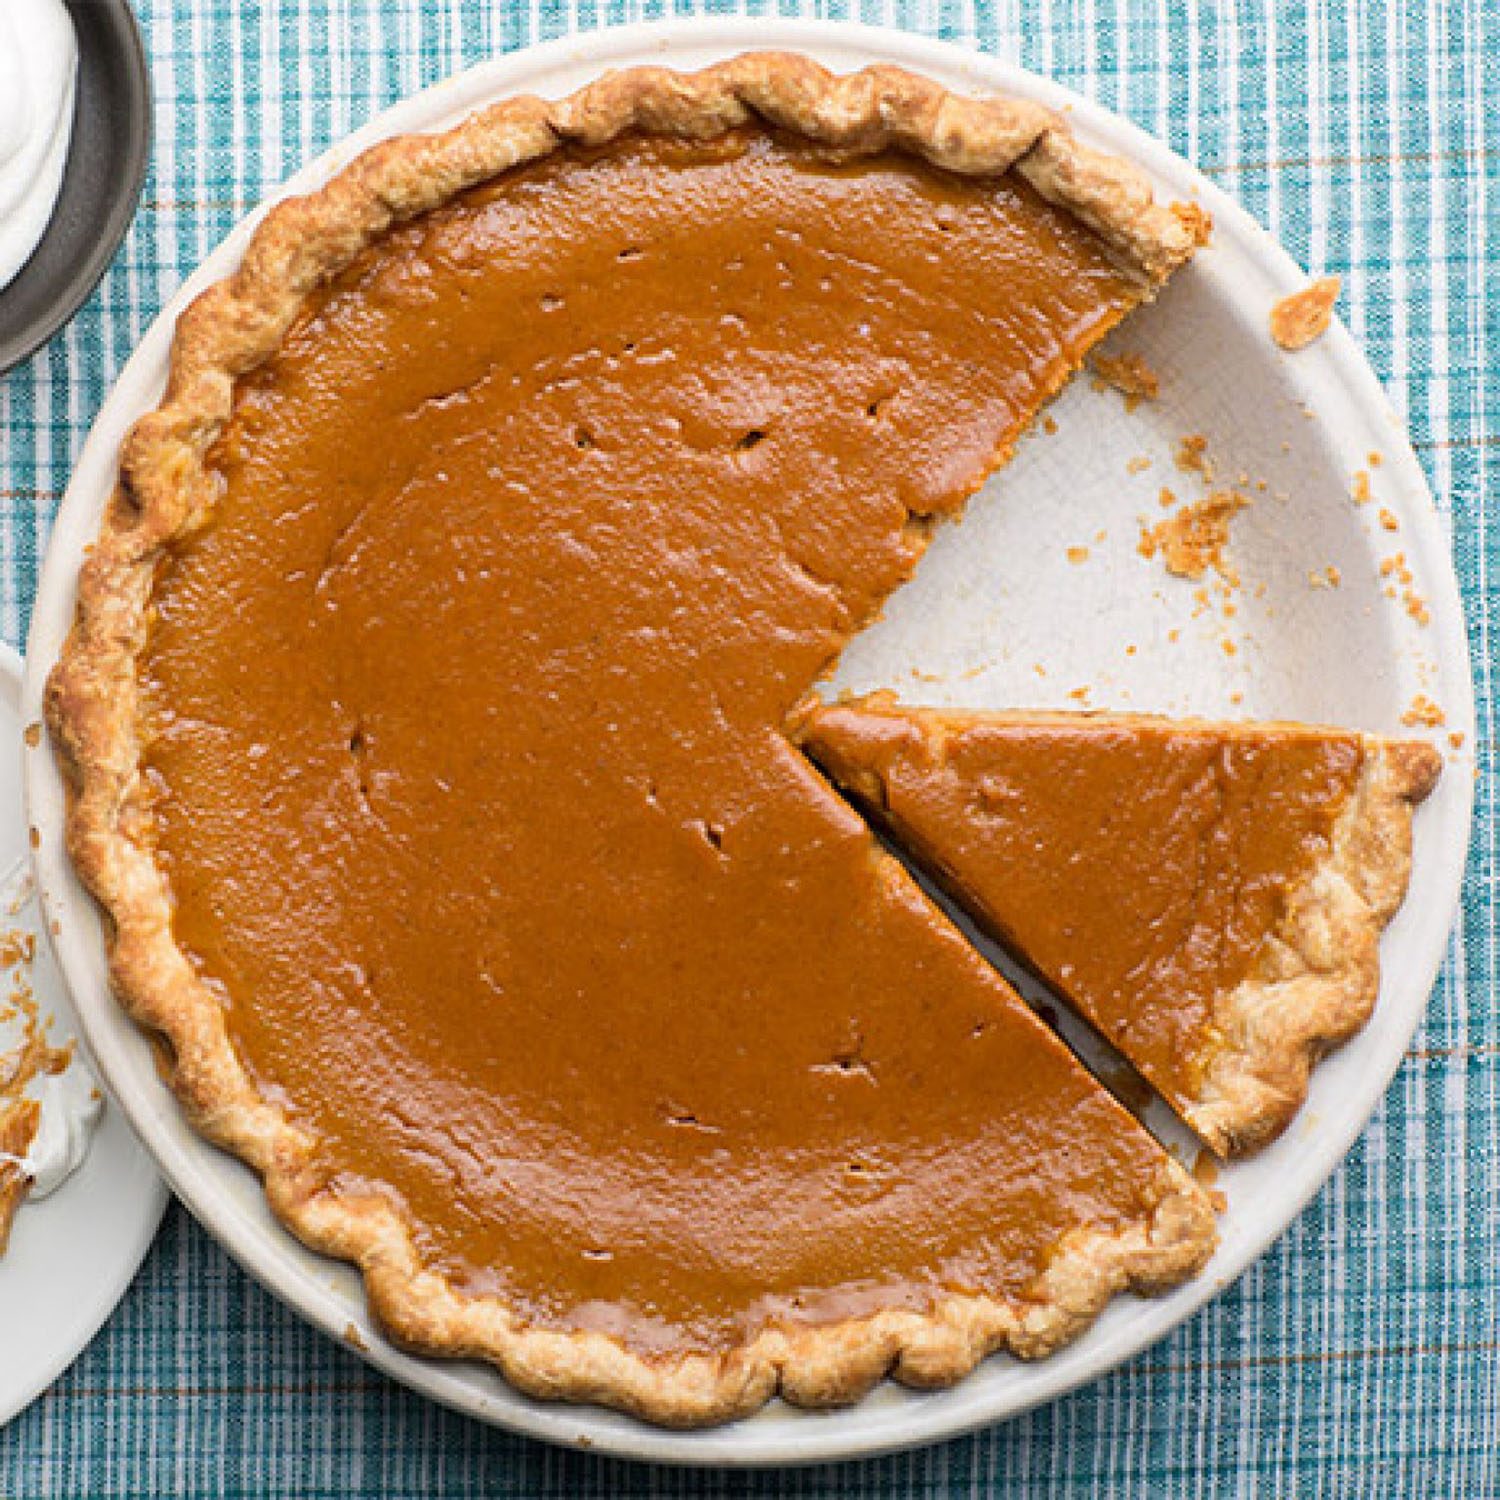 Pumpkin Pie   Slices of pumpkin pie are the ideal image for understanding pie-matched tabletops.  Image from the Food Network